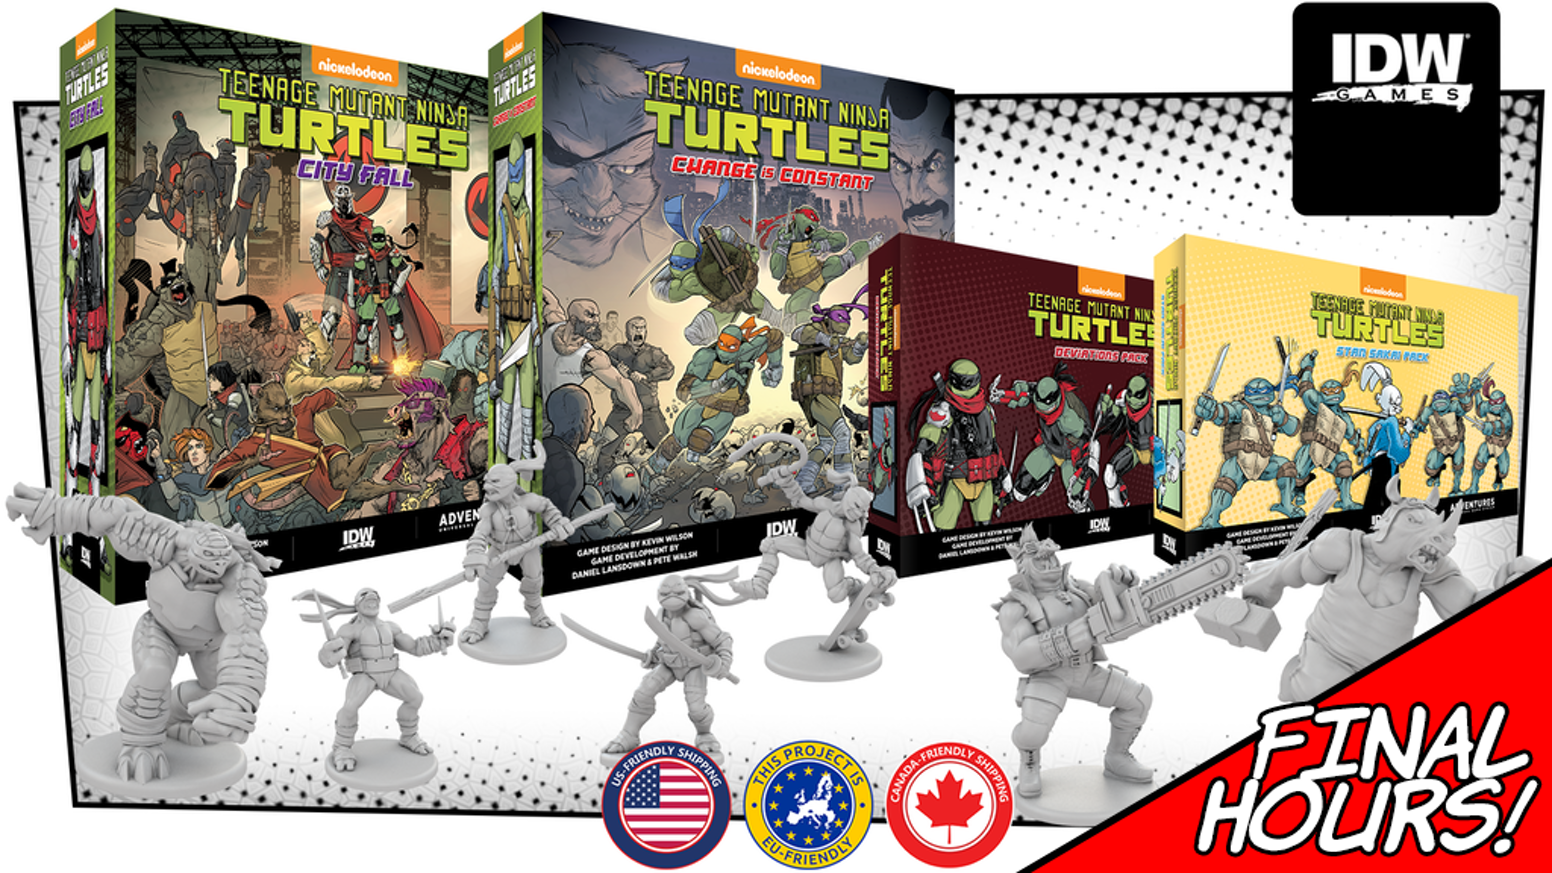 The Teenage Mutant Ninja Turtles are back with two games in the Adventures system that feature all new missions, minis, and enemies!